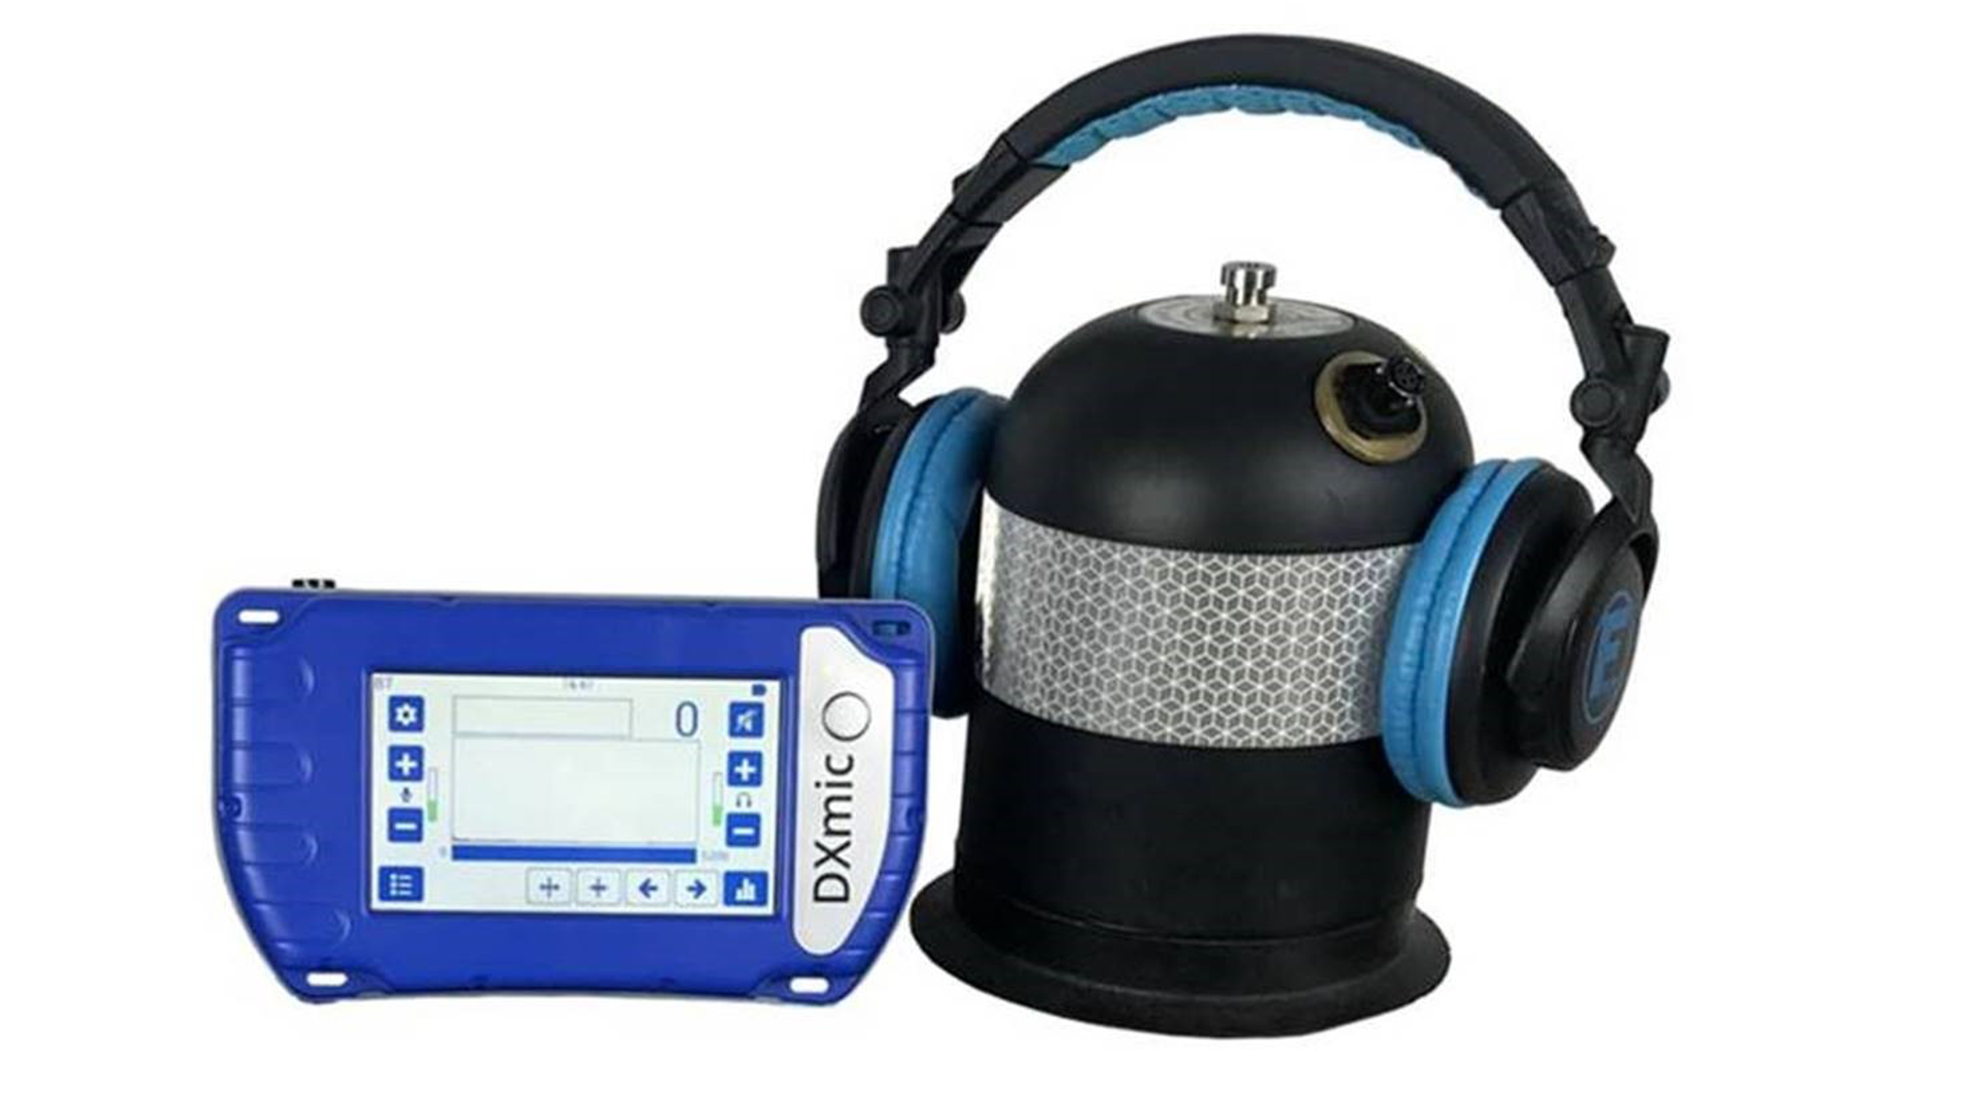 A ground microphone with headphones